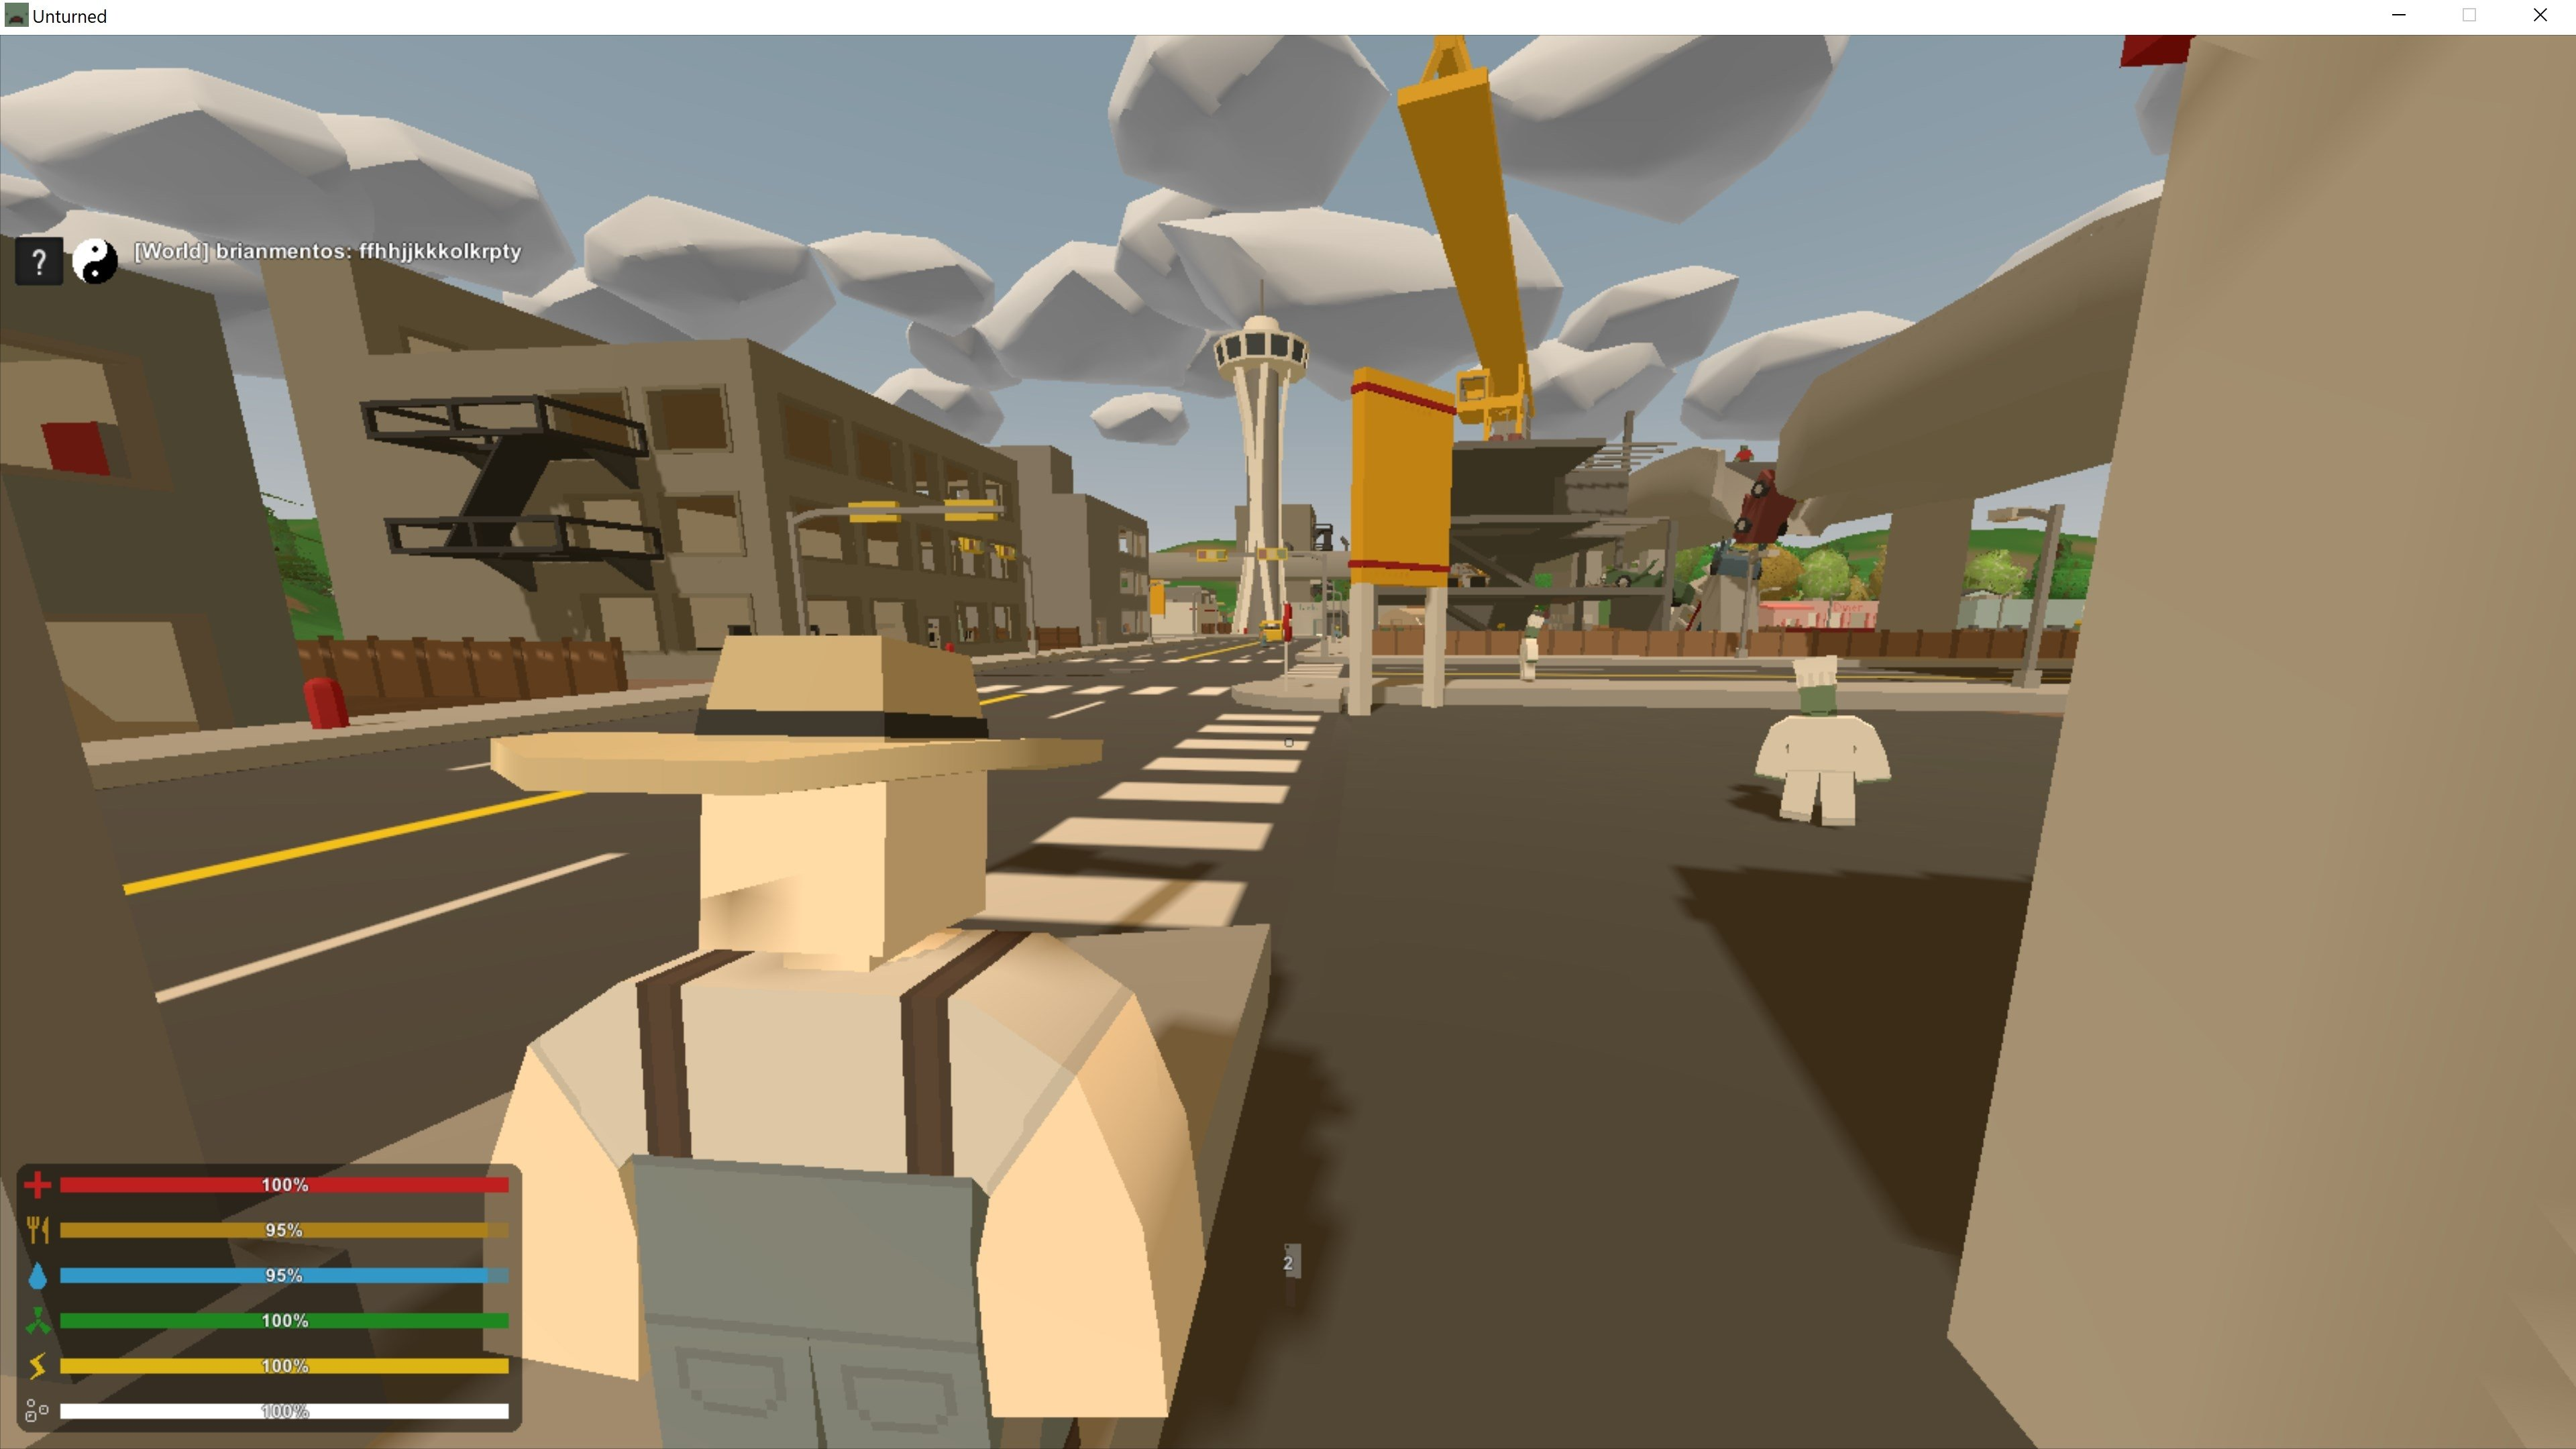 Download unturned 32391 for pc free unturned image 8 thumbnail gumiabroncs Images